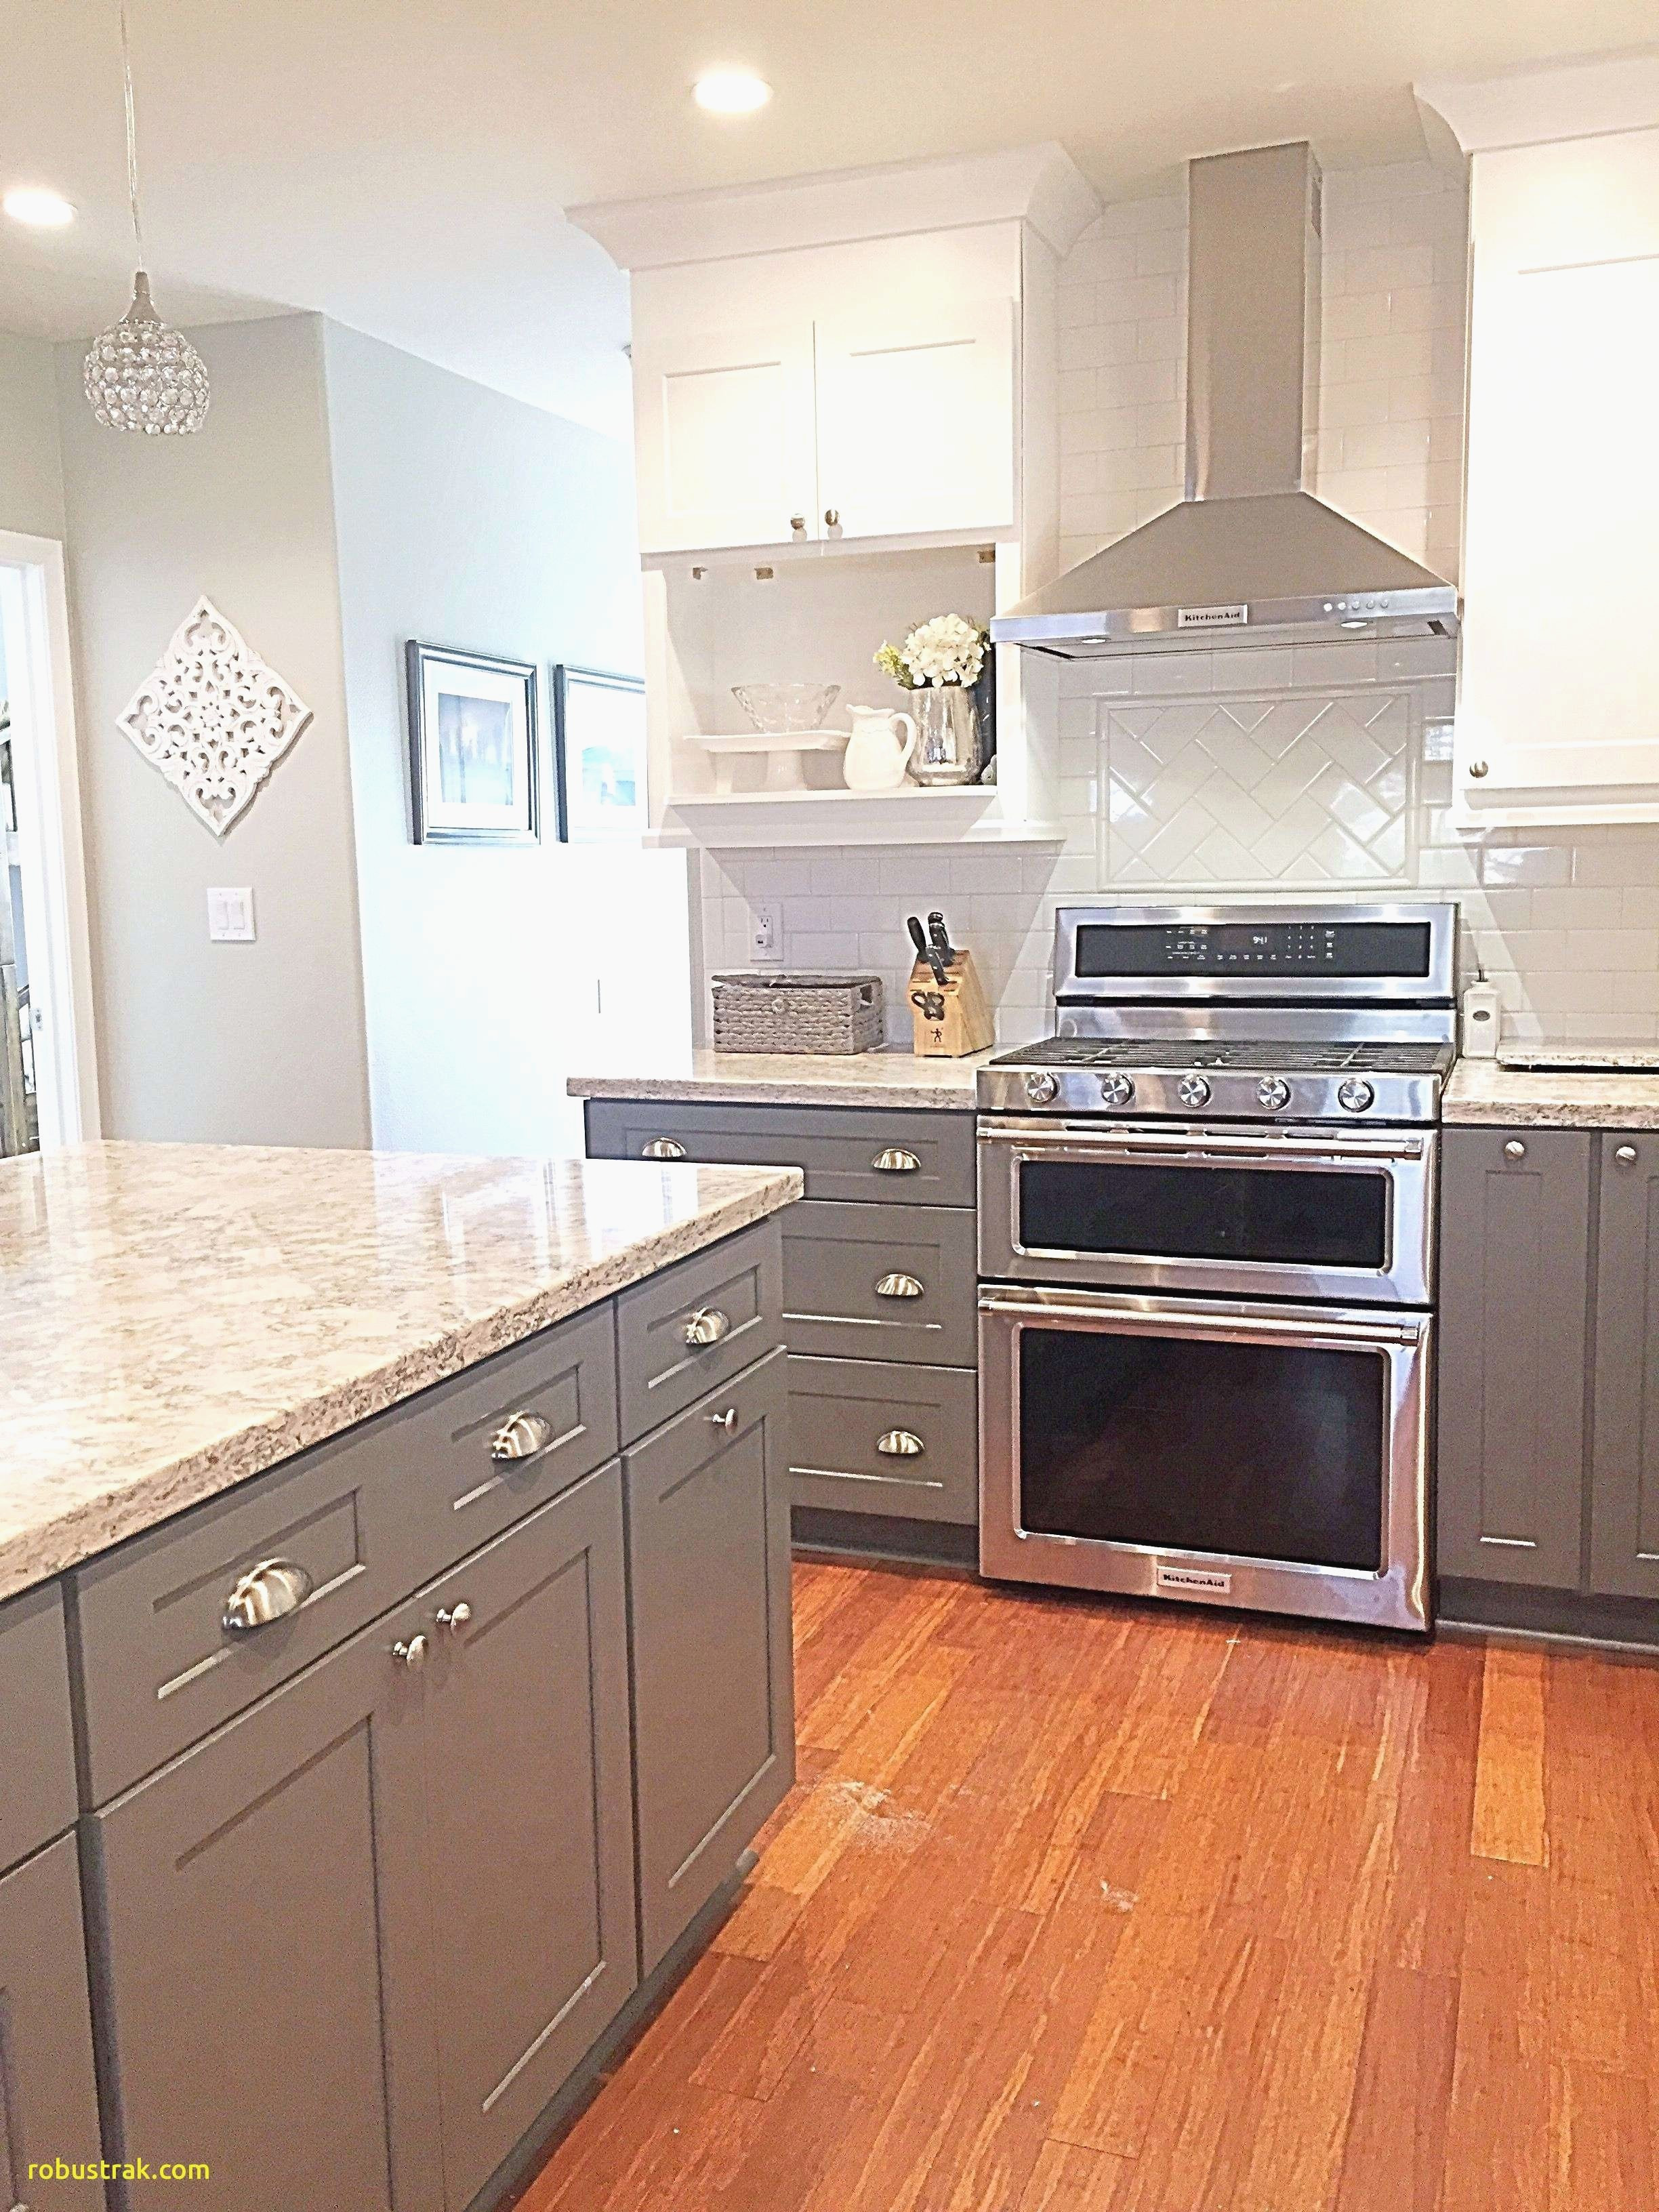 armstrong vs bruce hardwood flooring of 18 inspirational hardwood flooring stock dizpos com for hardwood flooring awesome the most kitchen cabinet wood colors stock home ideas pictures